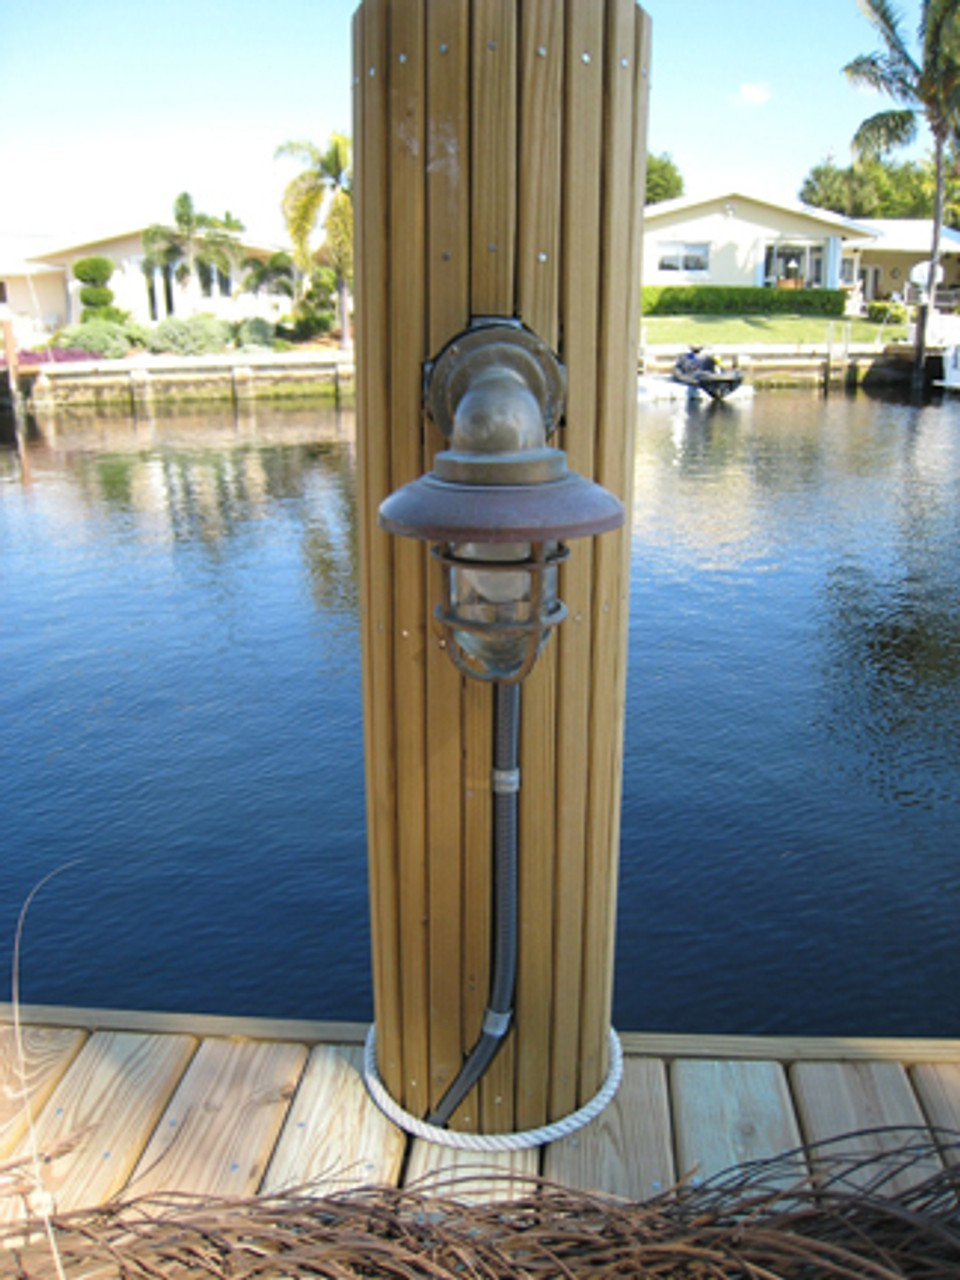 nautical pathway light with conduit coming into the junction box